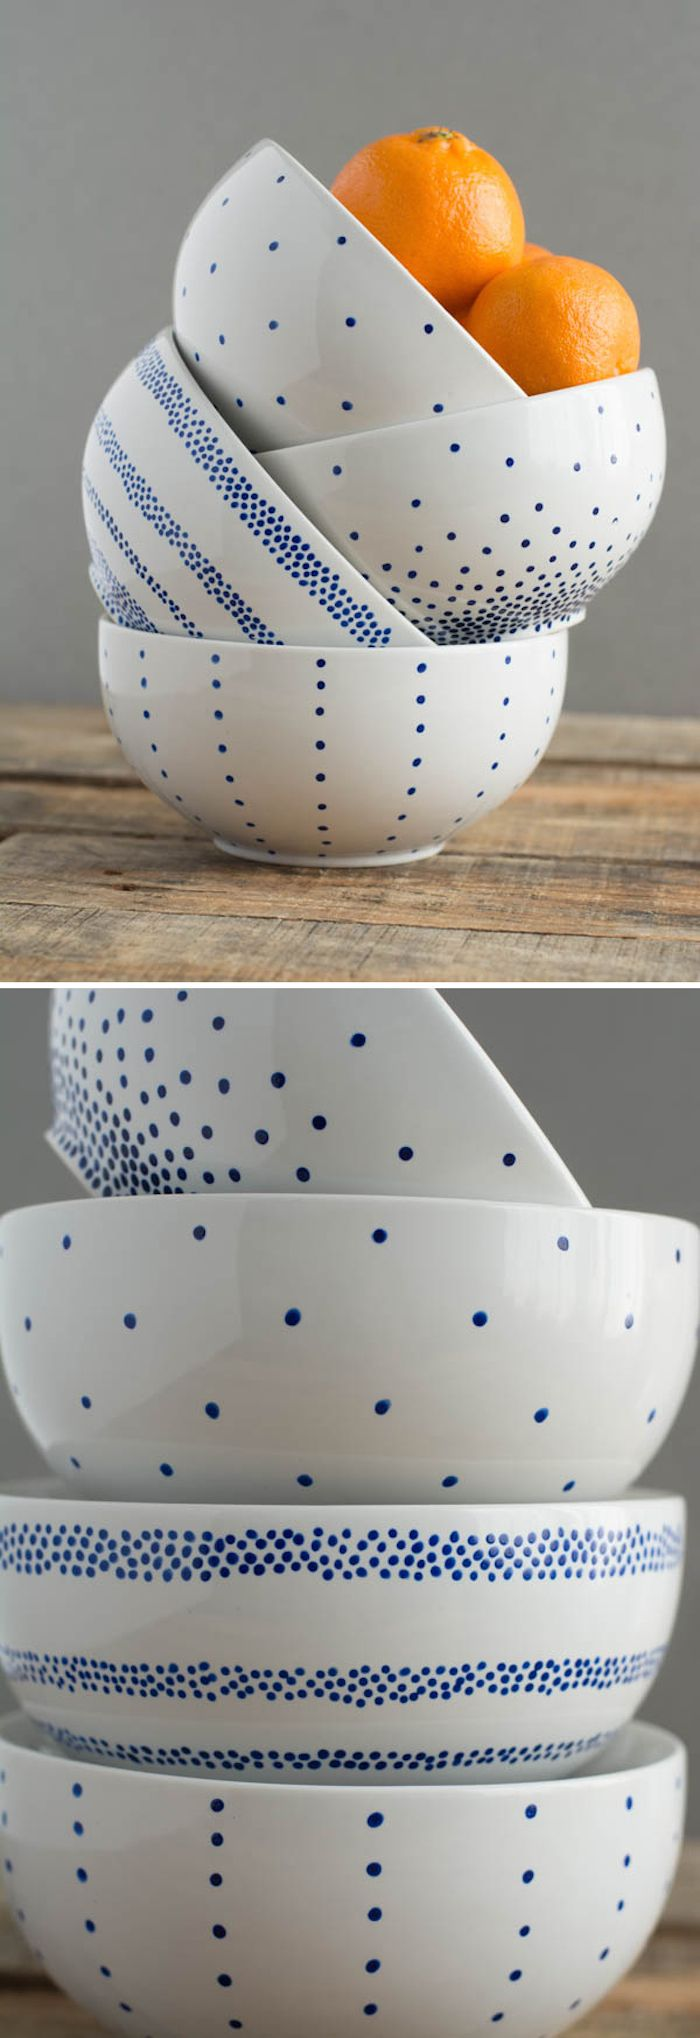 DIY a Set of Pretty Painted Cereal Bowls tutorial from @babble